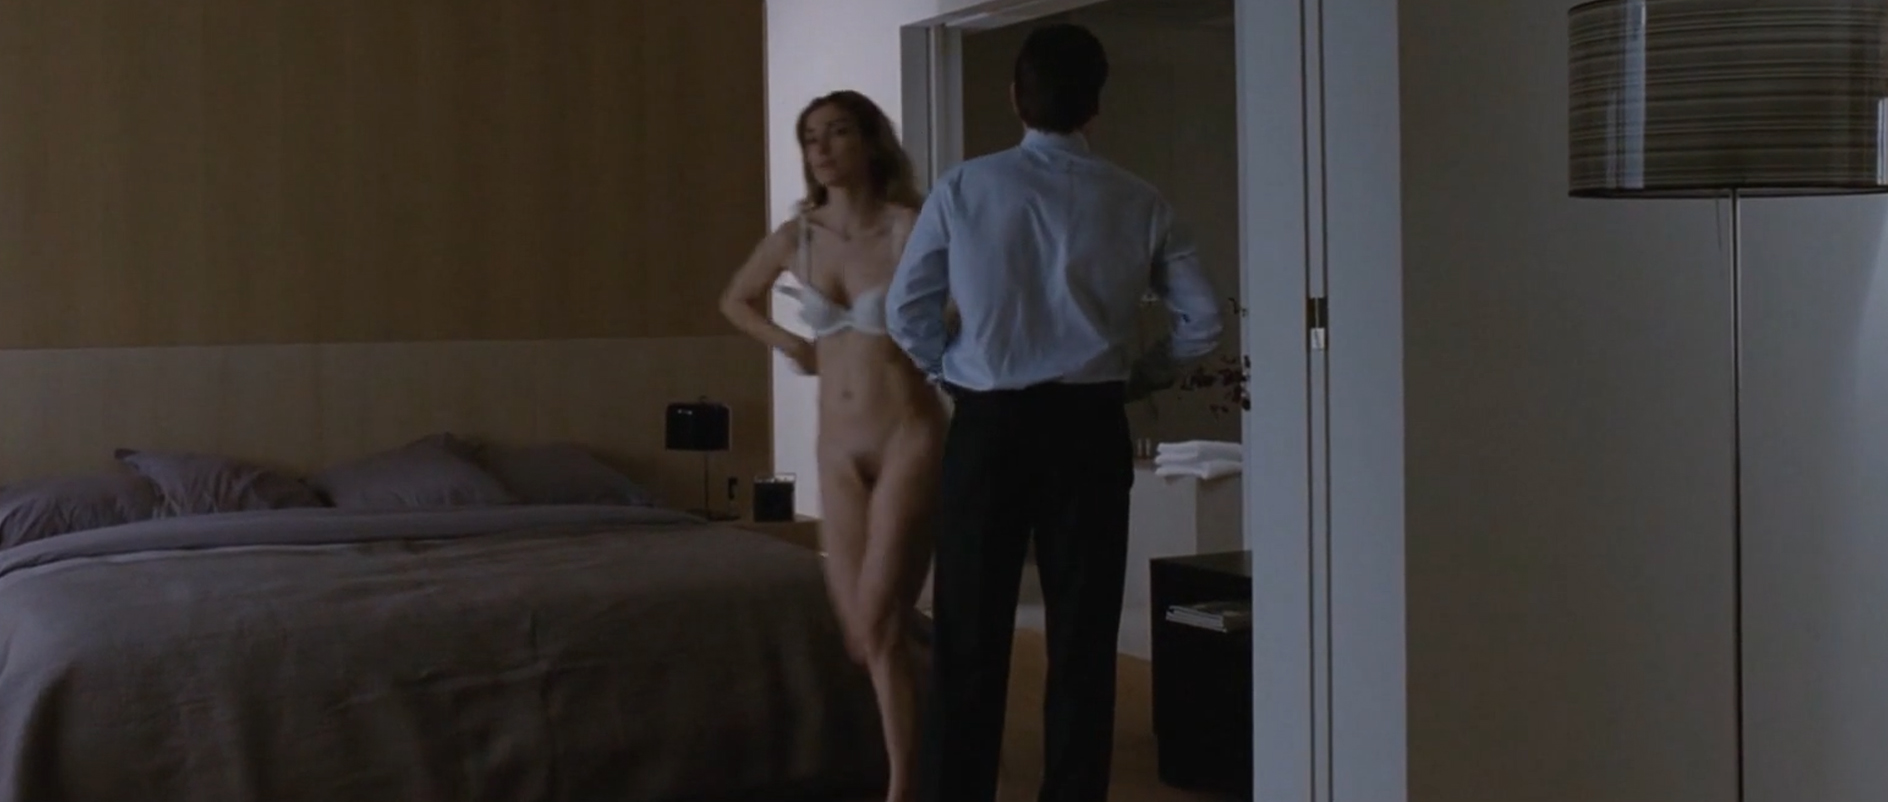 Amy Hargreaves Sex julie gayet - sans laisser de traces (2010) - celebs